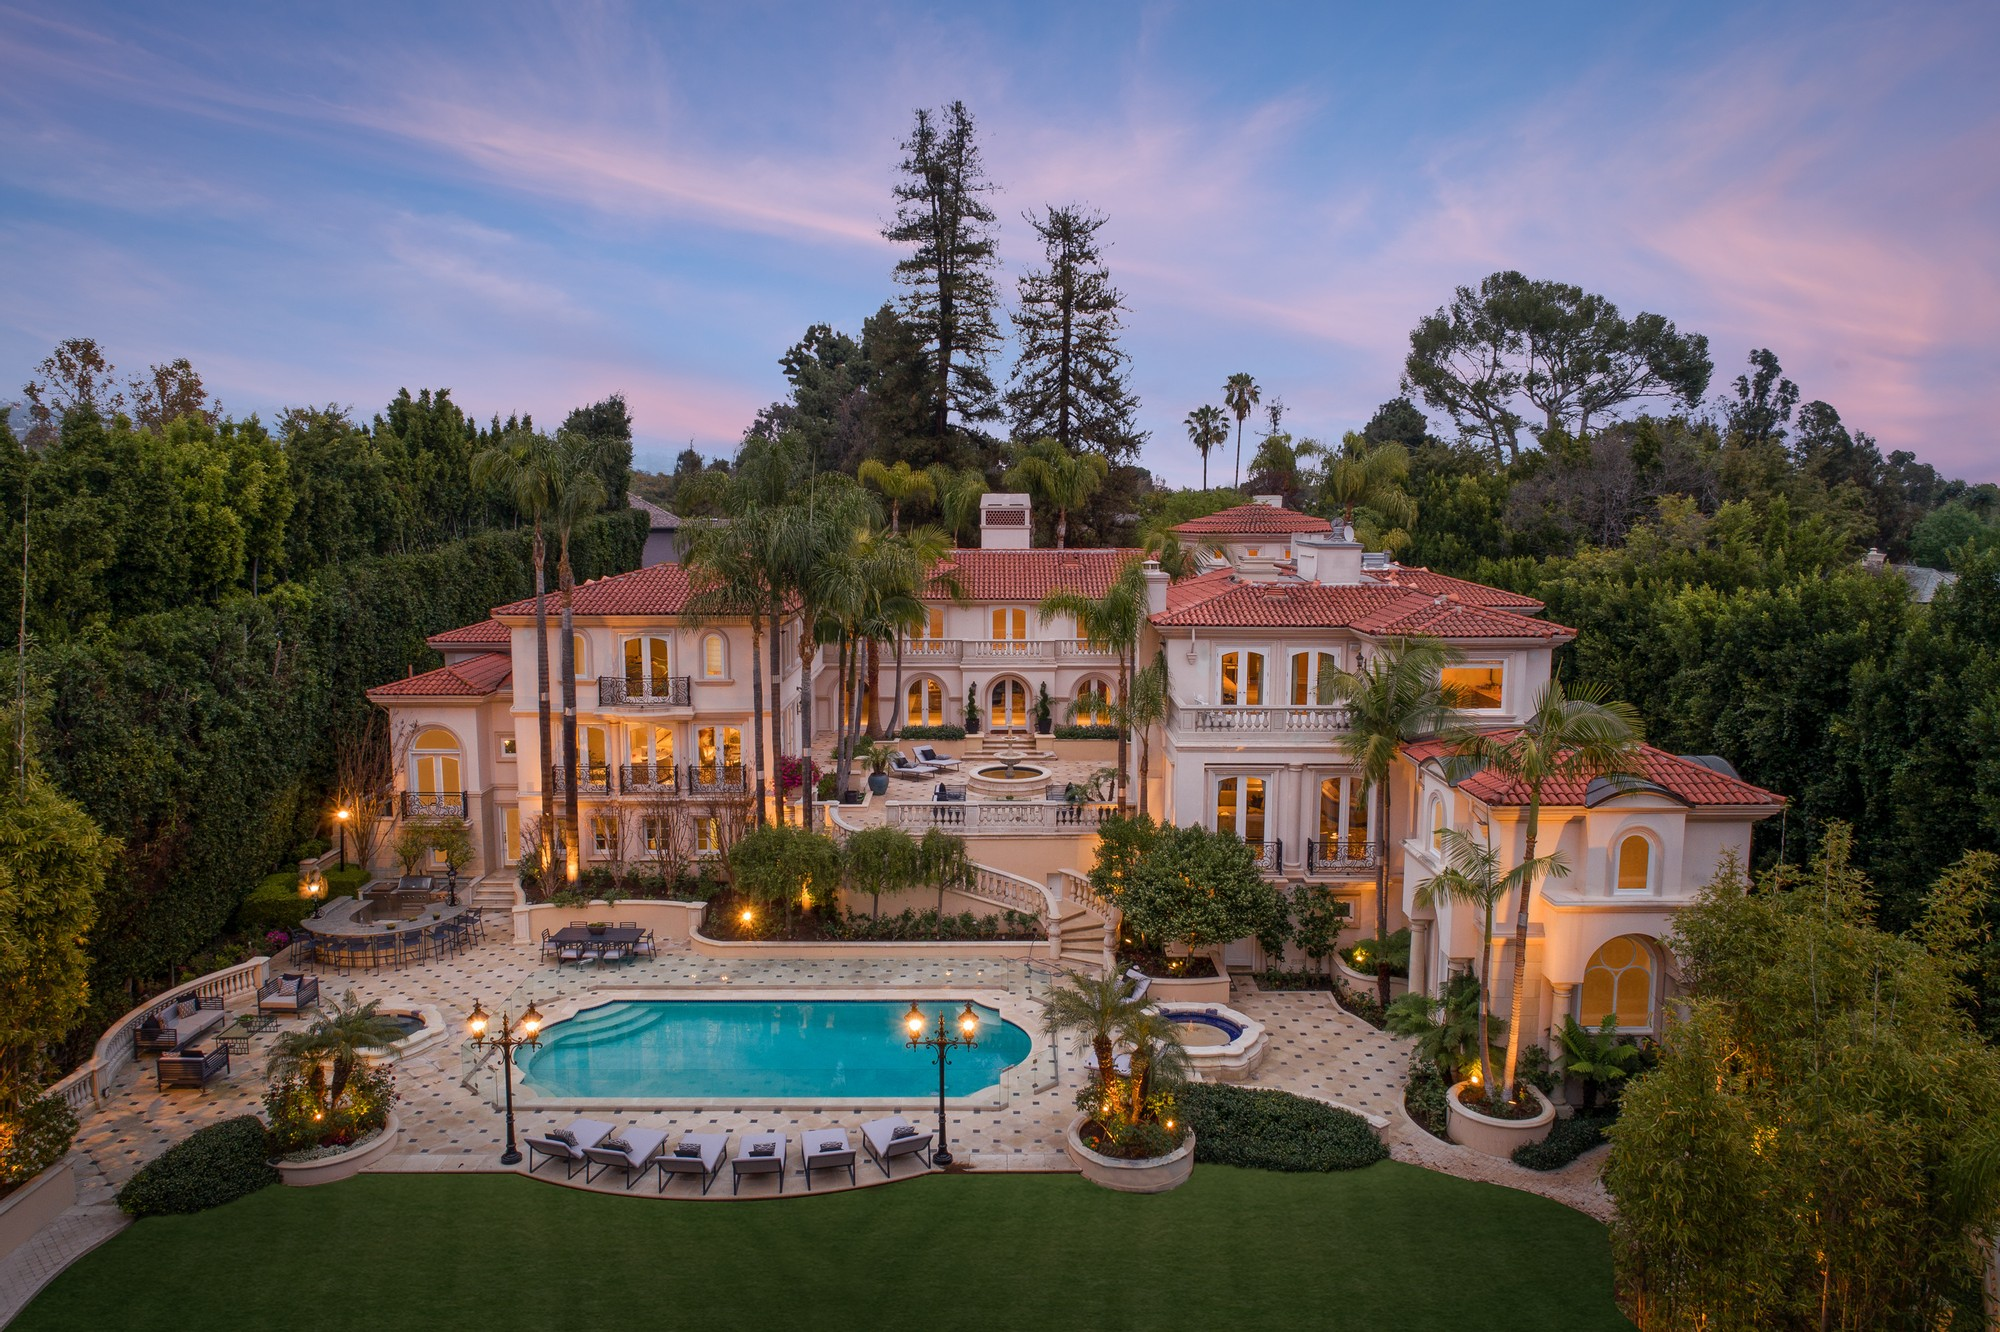 The biggest, most beautiful and most expensive mansions in the world